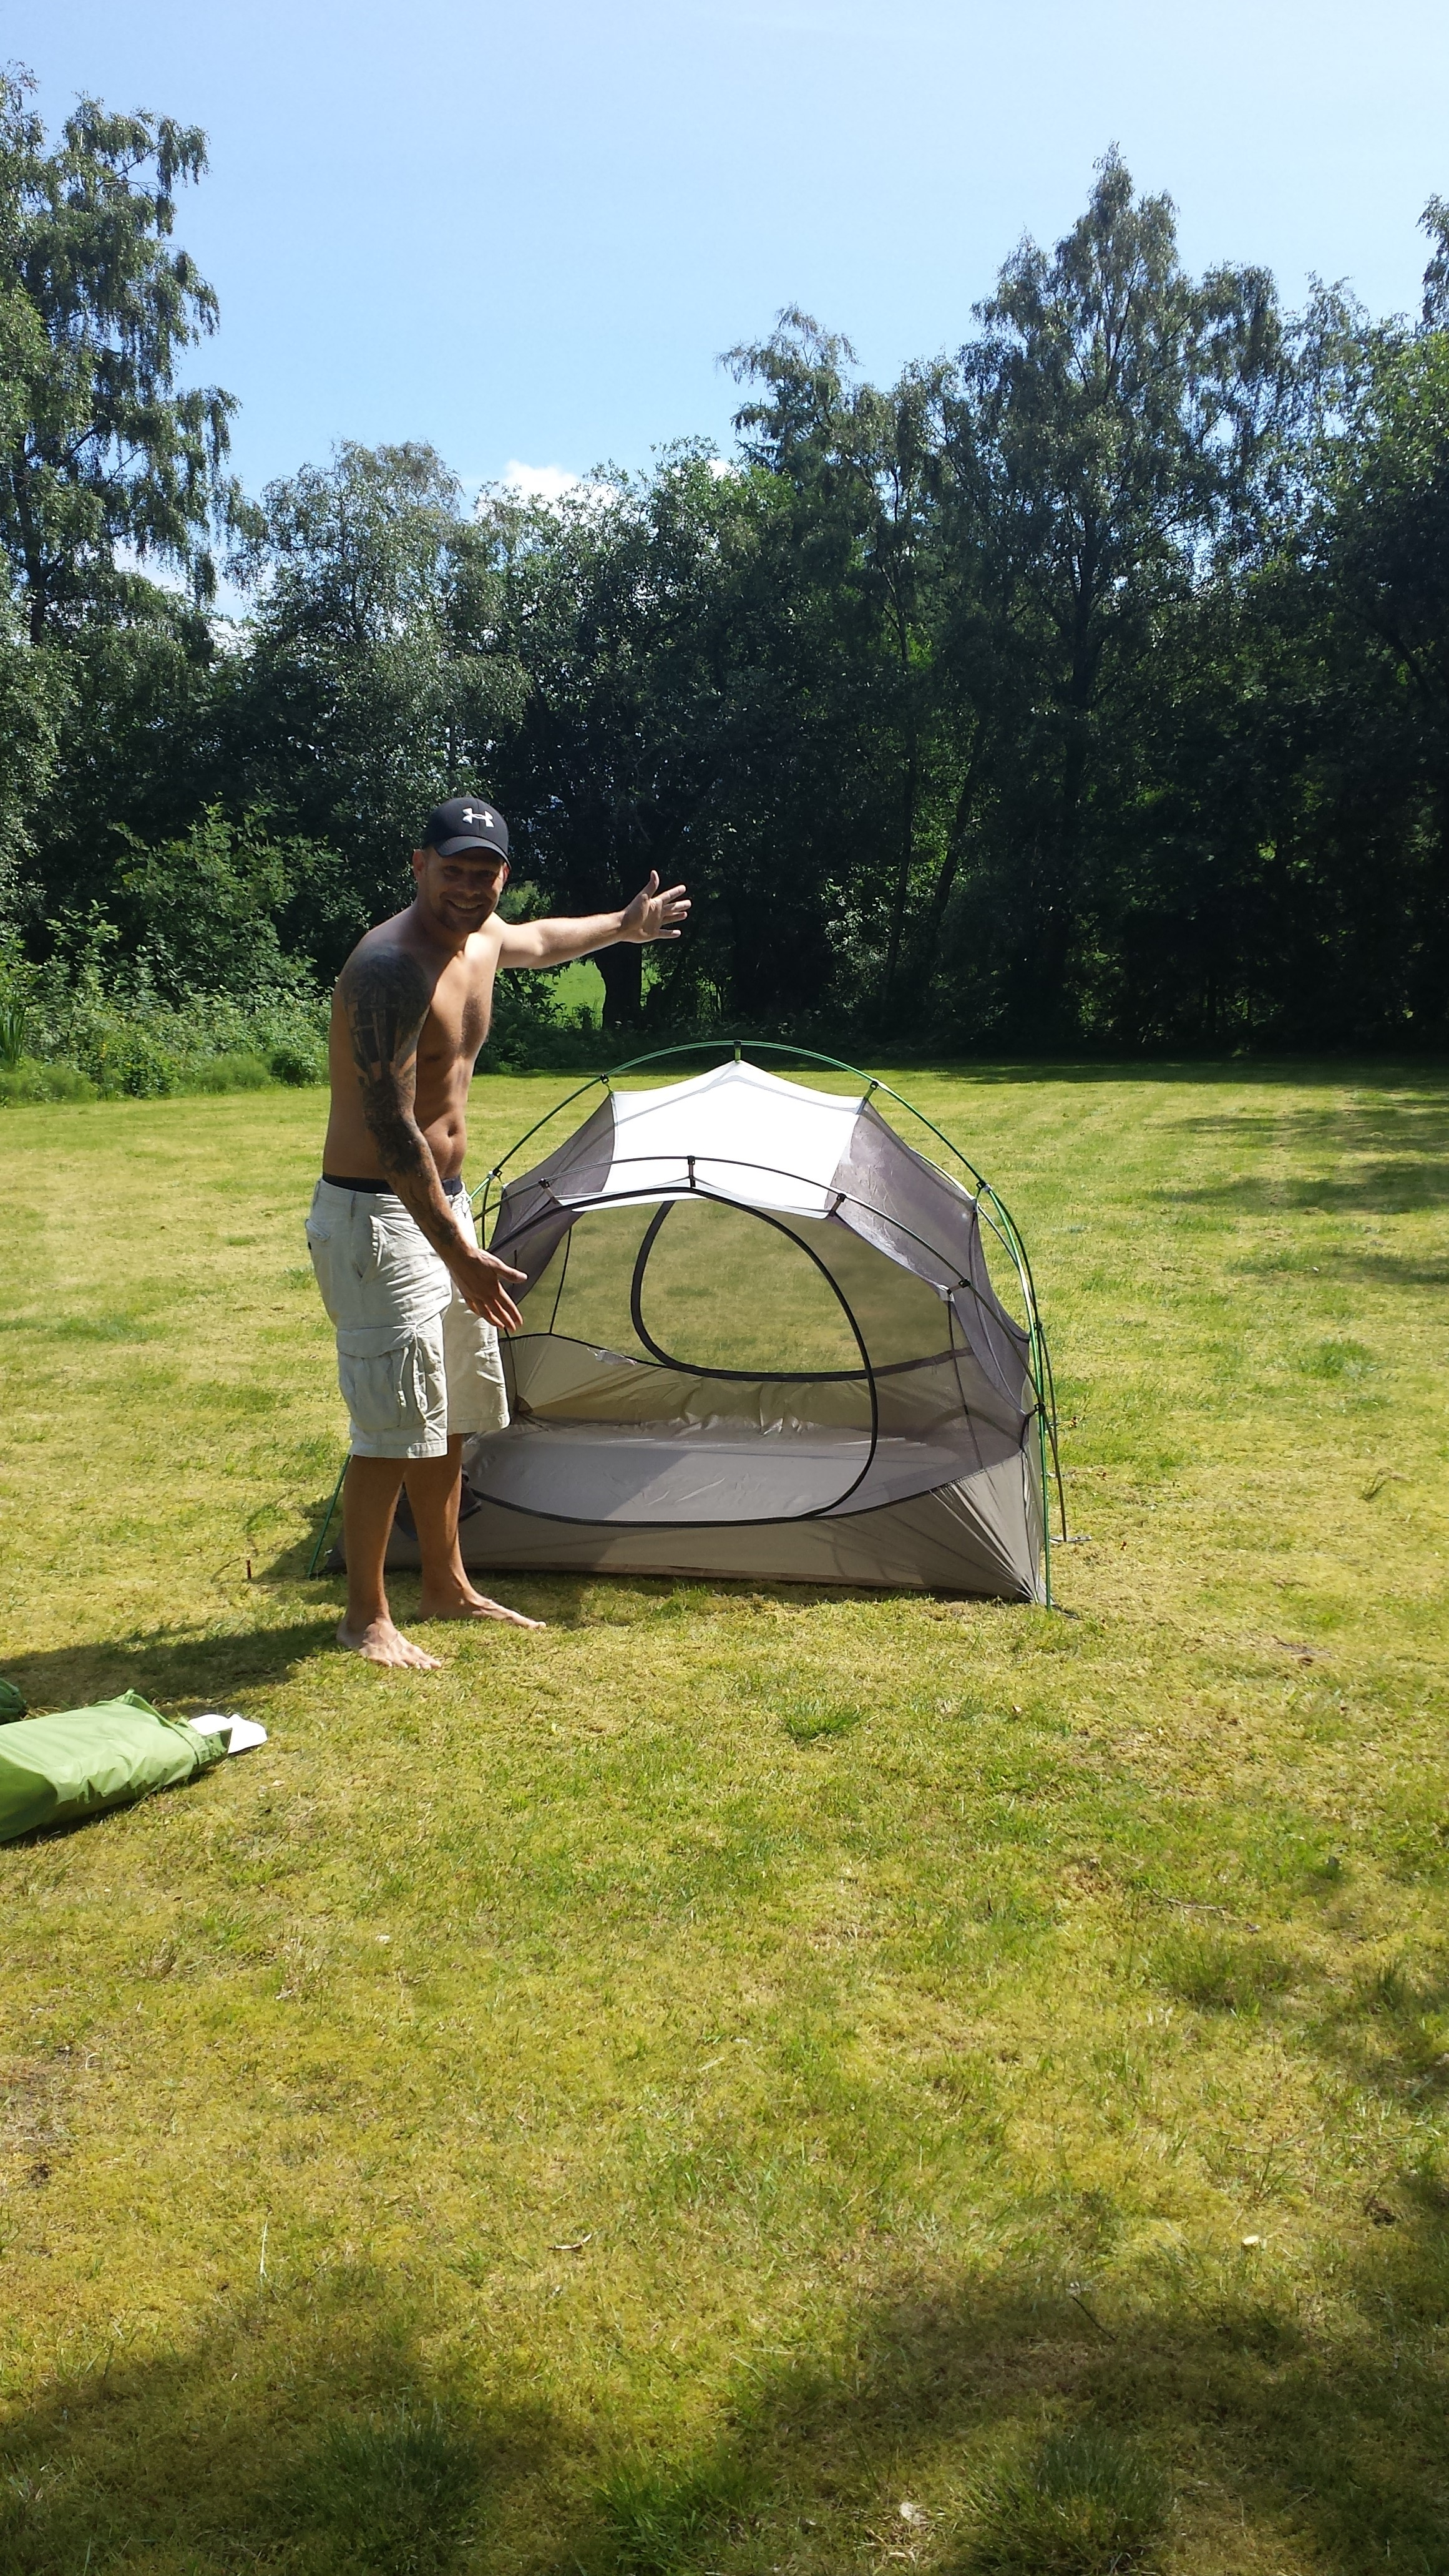 Bug net / inner tent setup in 2 chakes -) & MSR Mutha Hubba. The tent bought and tested..   Gorilladays